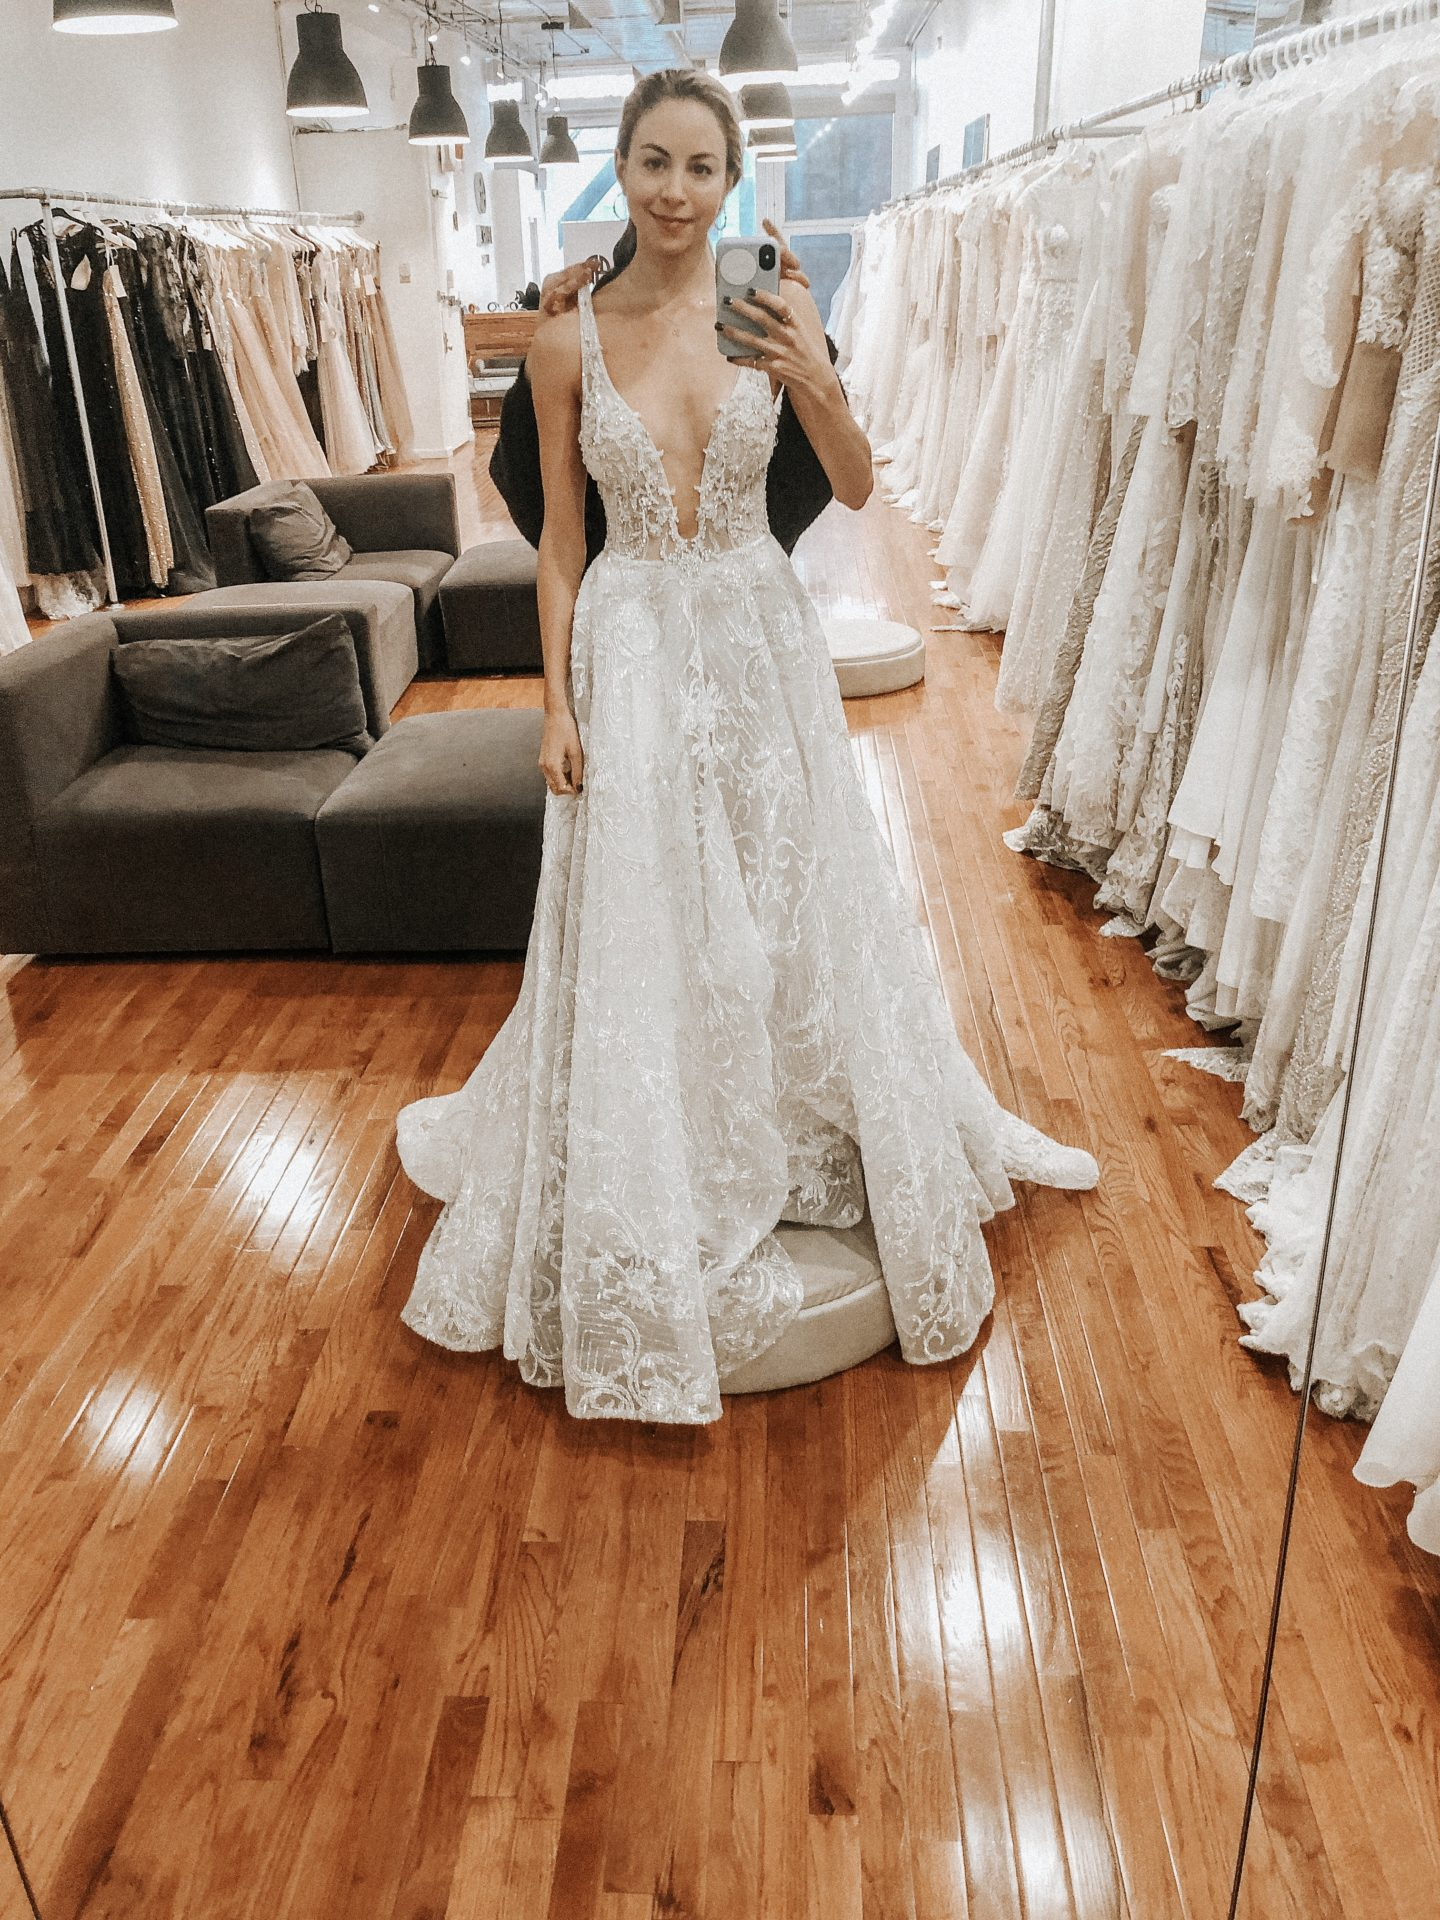 3a62cc09ed Trunk shows means a designer is doing a TOUR and these dresses travel  around the world to different cities. If you buy a trunk show dress